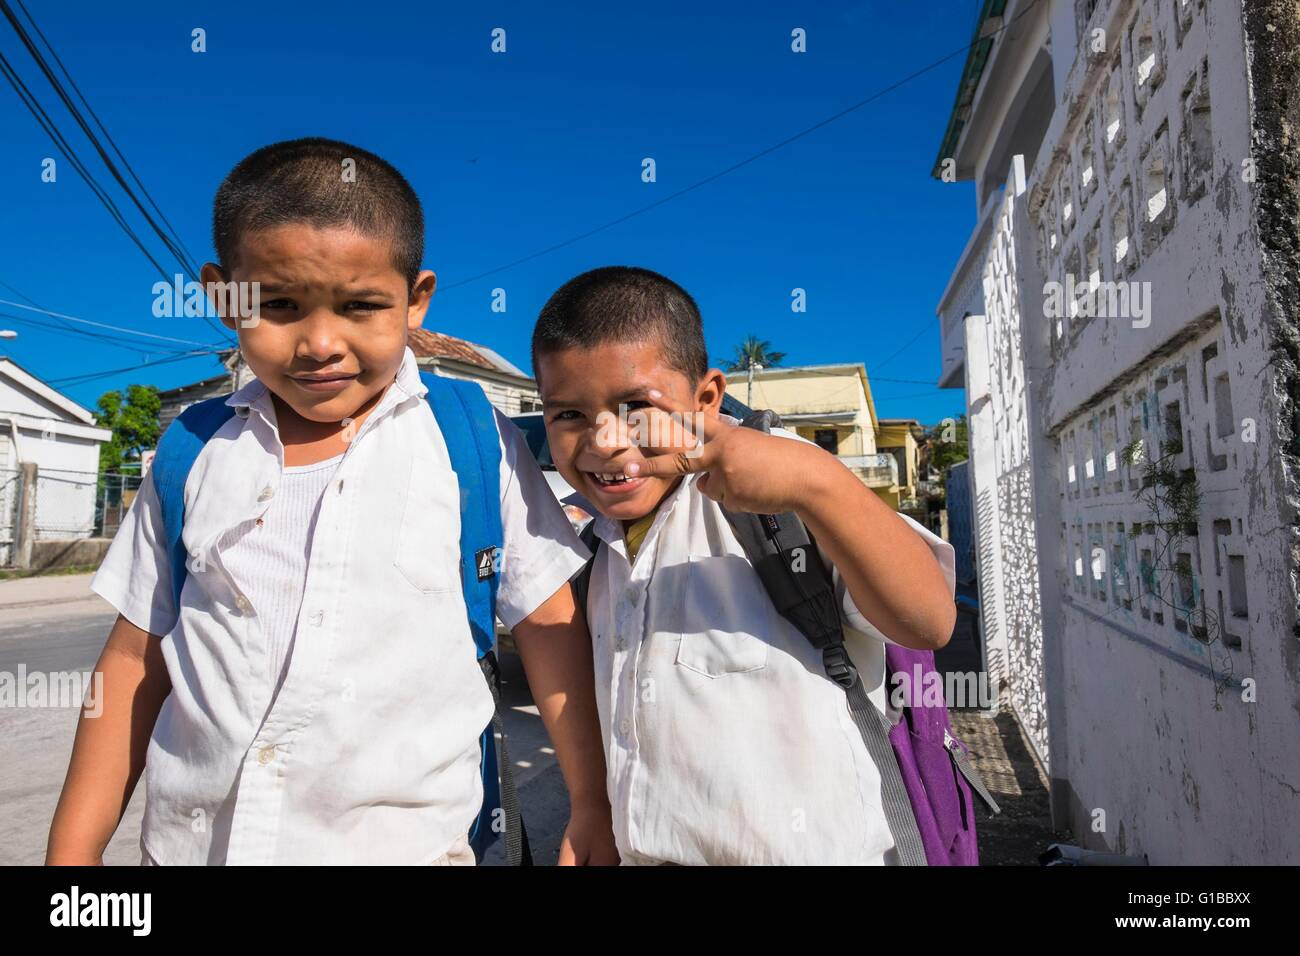 Belize, Belize district, Belize City, after school - Stock Image